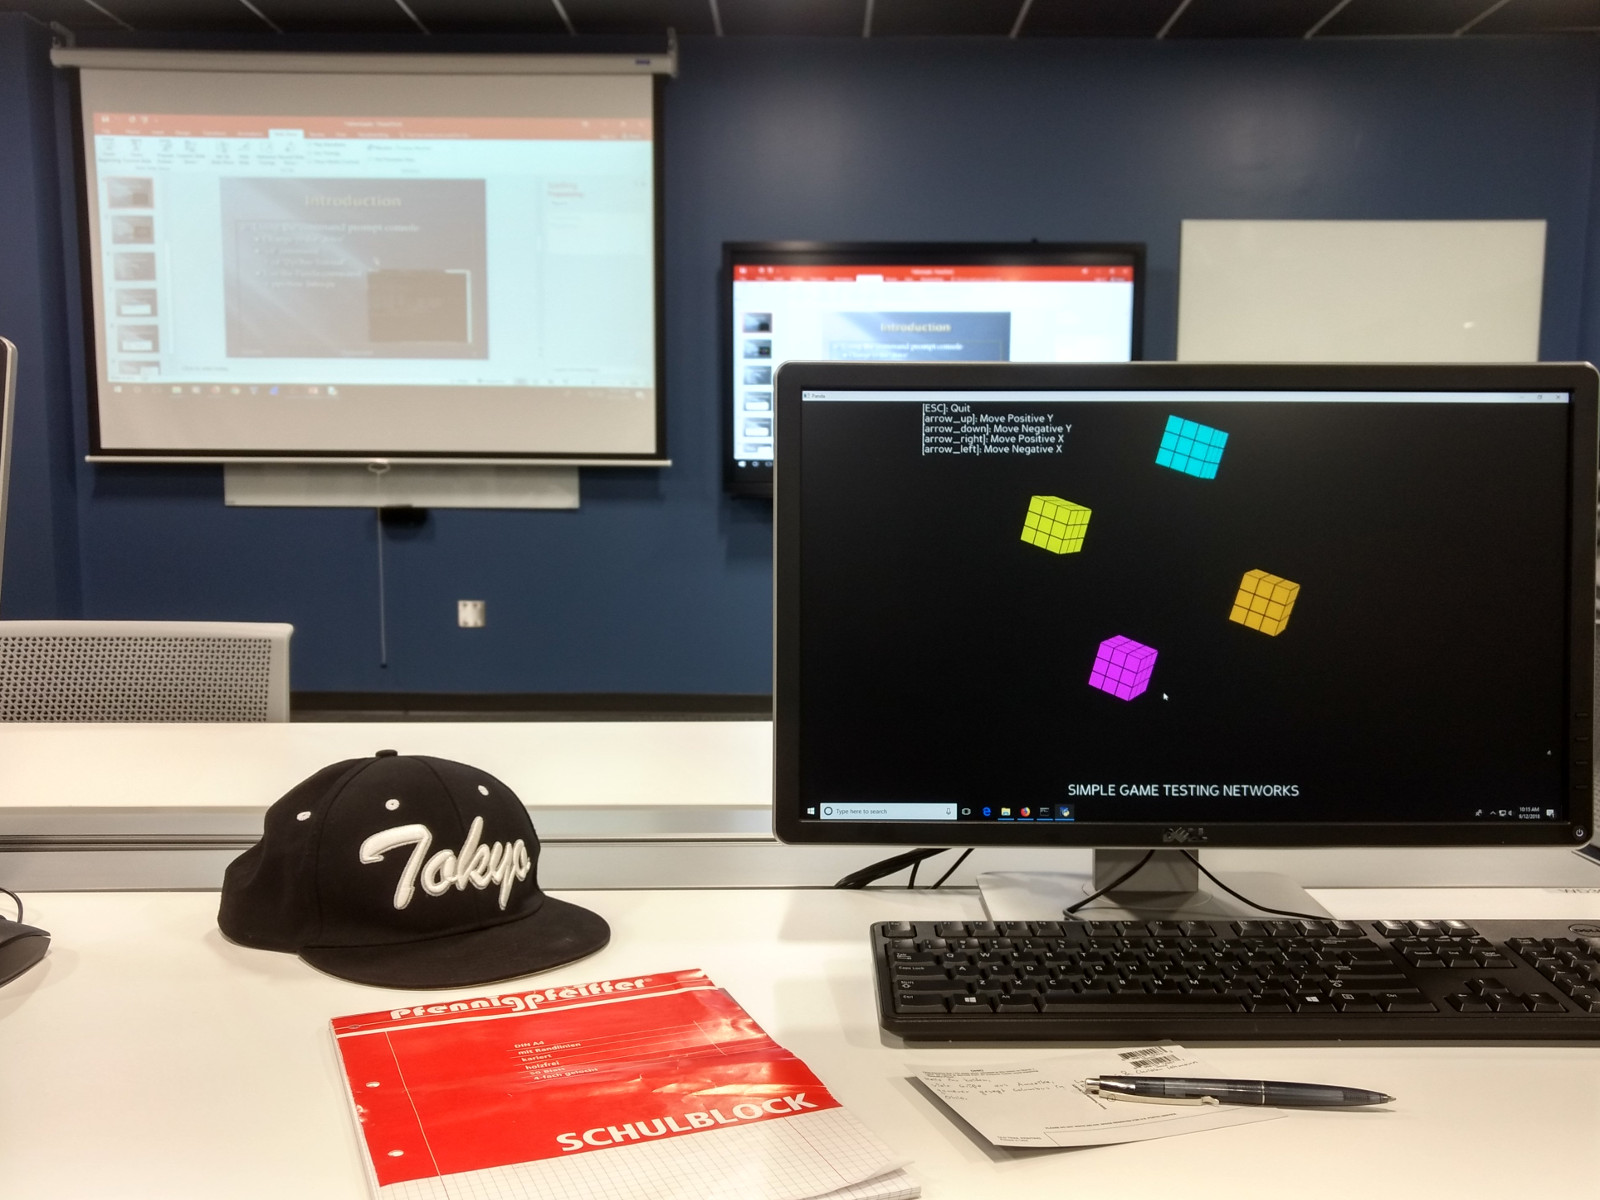 A game development course at the Columbus State Community College